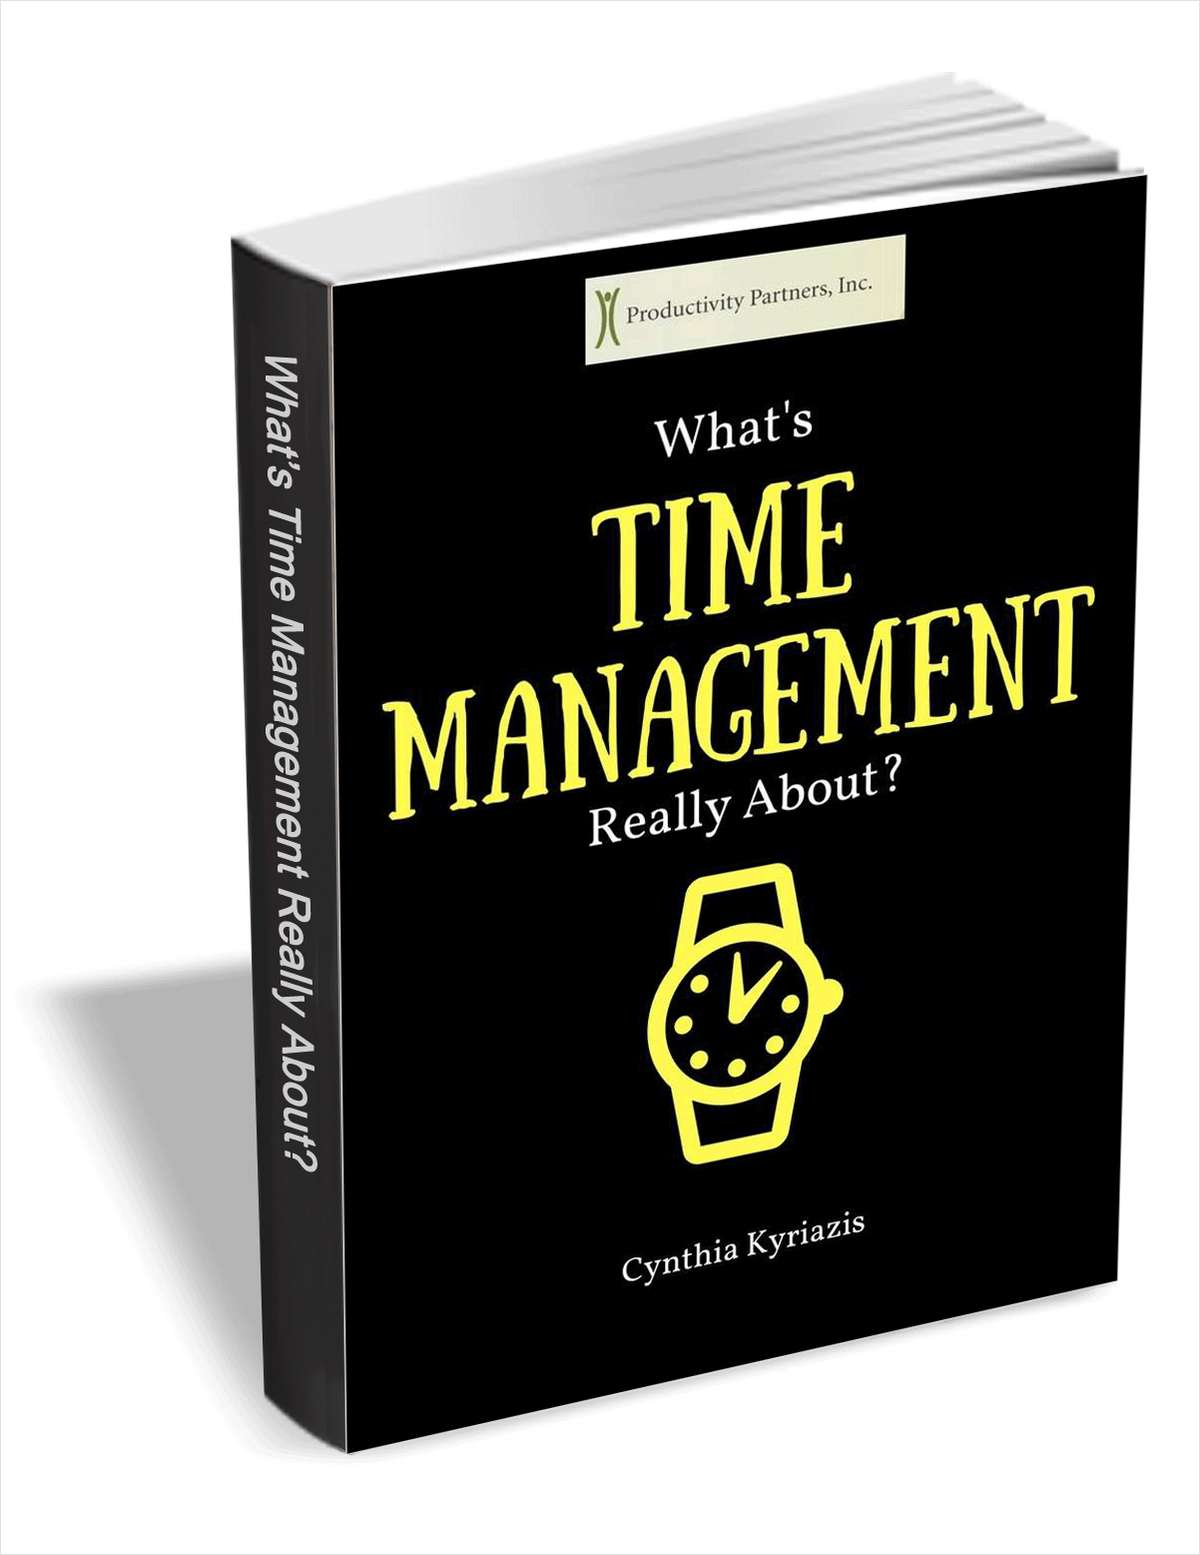 What's Time Management Really About?